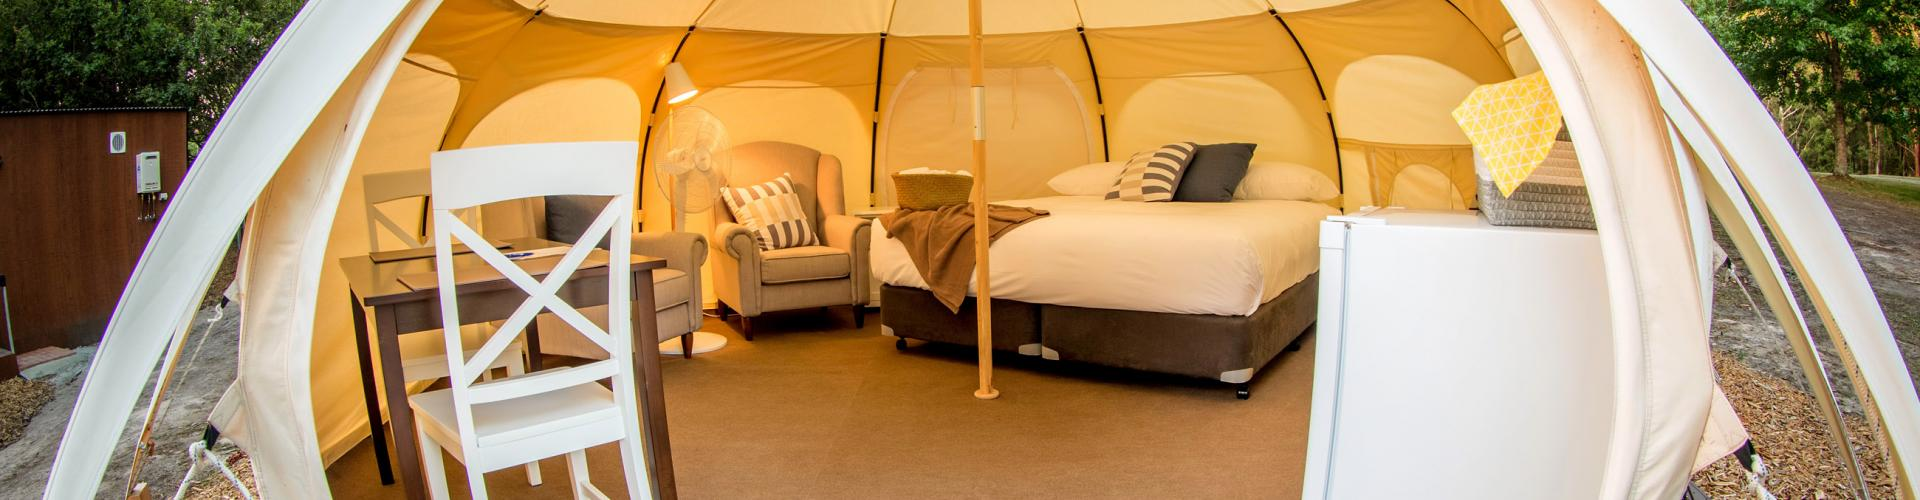 BIG4 Yarra Valley Park Lane Holiday Park - Glamping - Belle Tent - Single - Opening Image